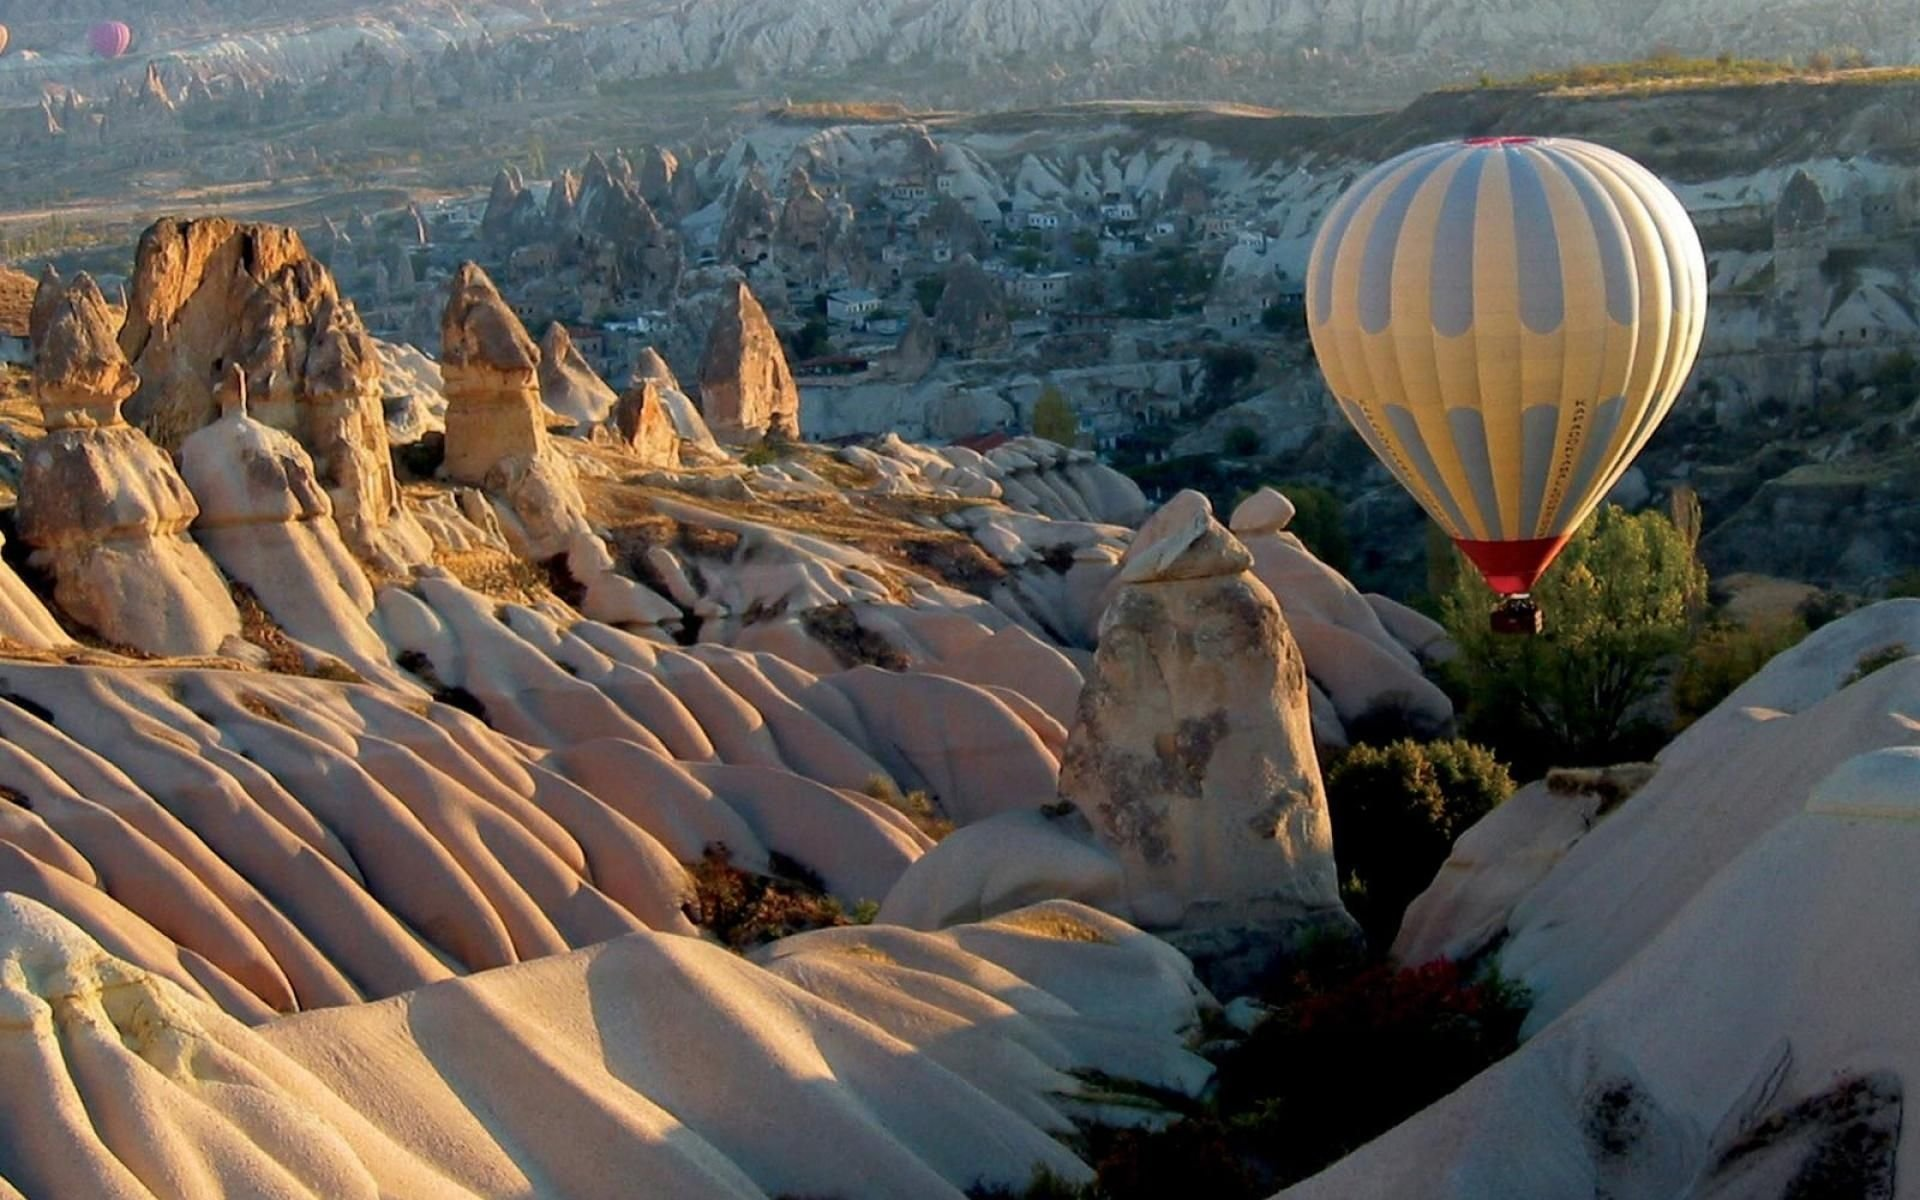 Vehicles - Hot Air Balloon  Cappadocia Wallpaper